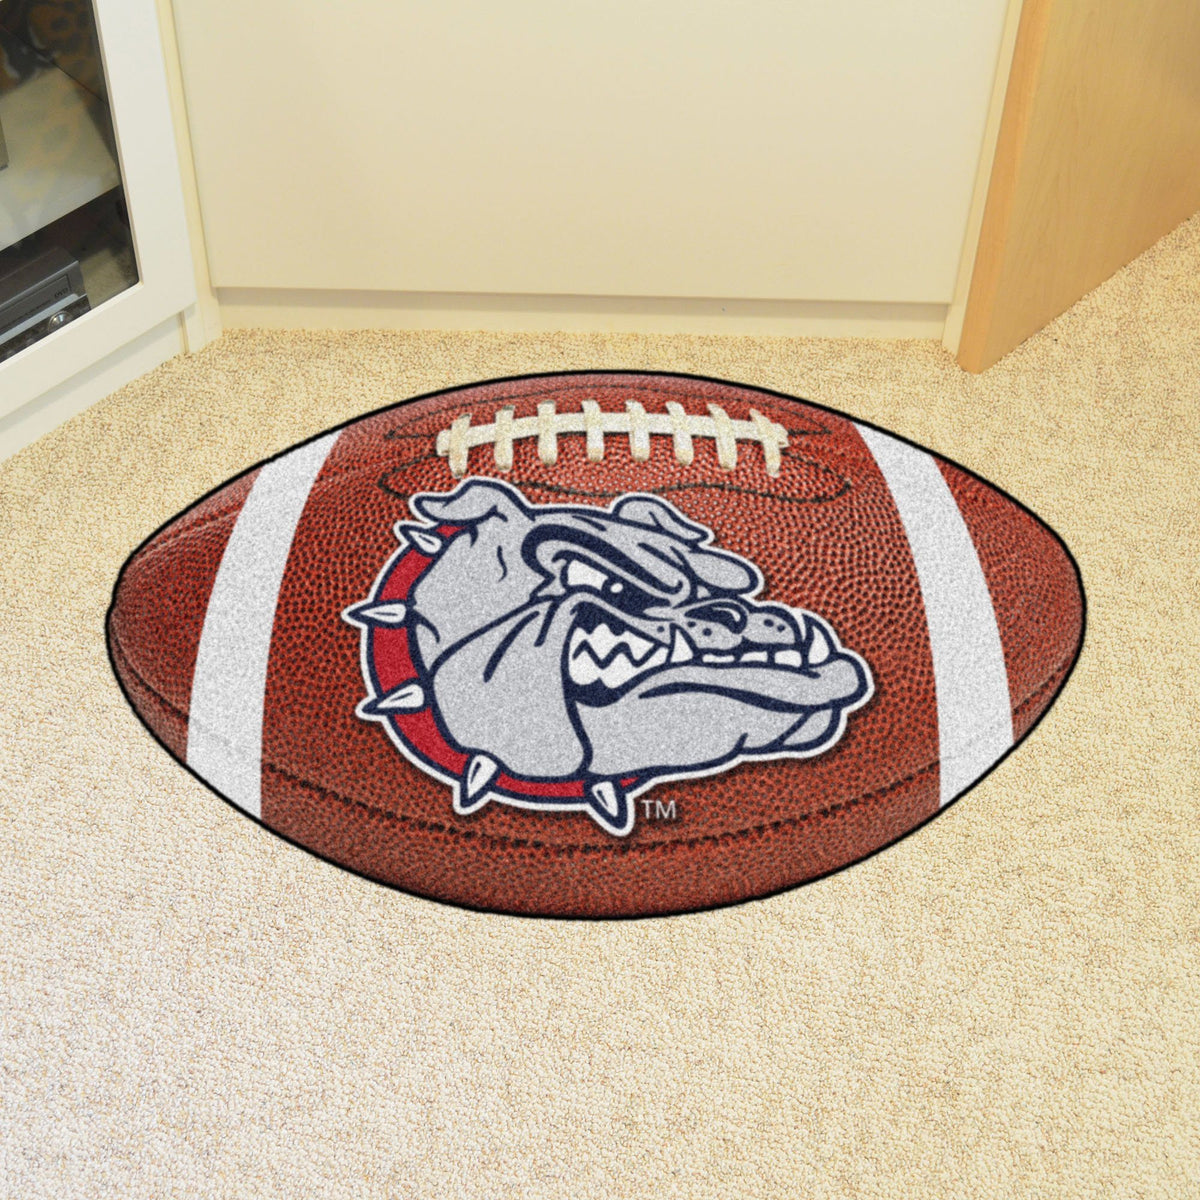 Collegiate - Football Mat: A - K Collegiate Mats, Rectangular Mats, Football Mat, Collegiate, Home Fan Mats Gonzaga